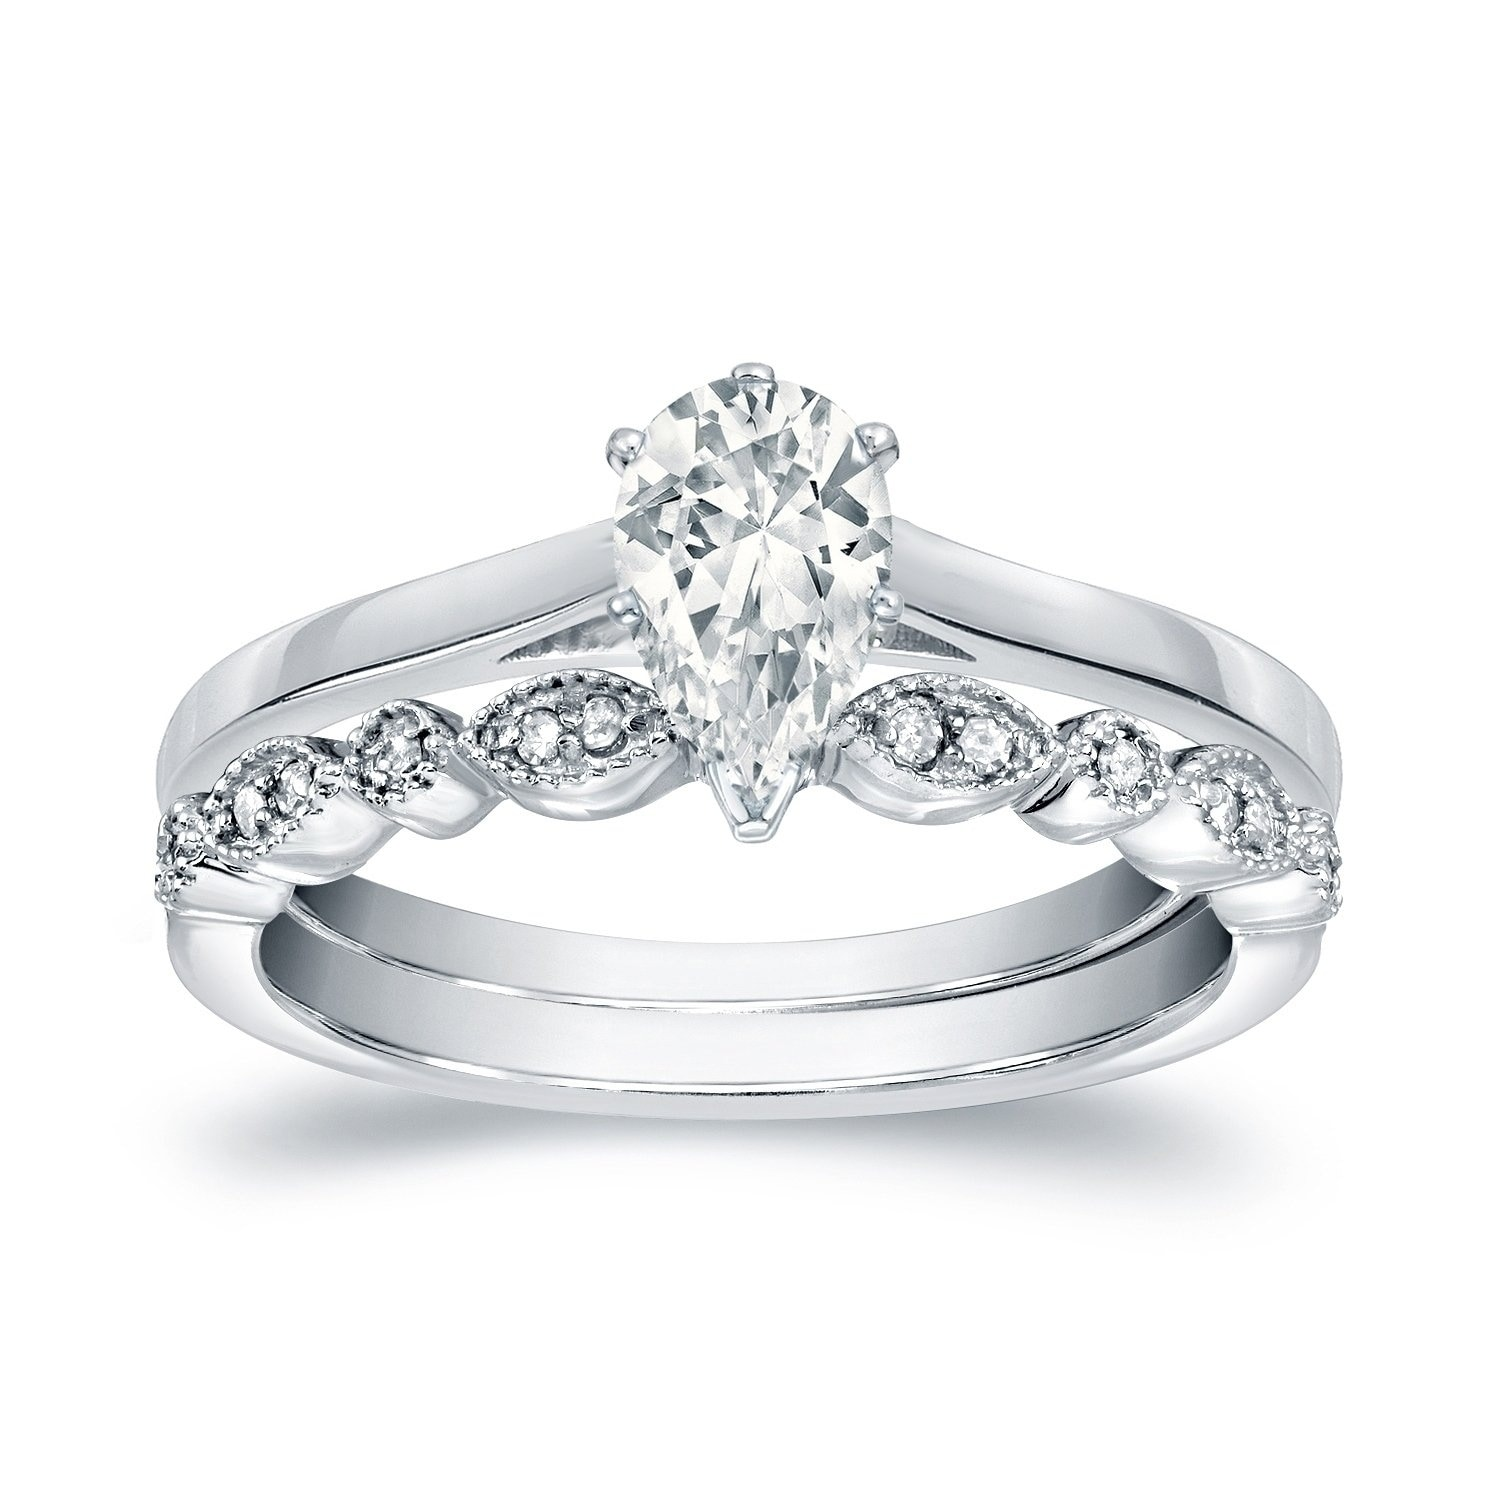 14k Gold Vintage Stackable 1 2ct Tdw Pear Shaped Solitaire Diamond Engagement Ring Set By Auriya On Free Shipping Today